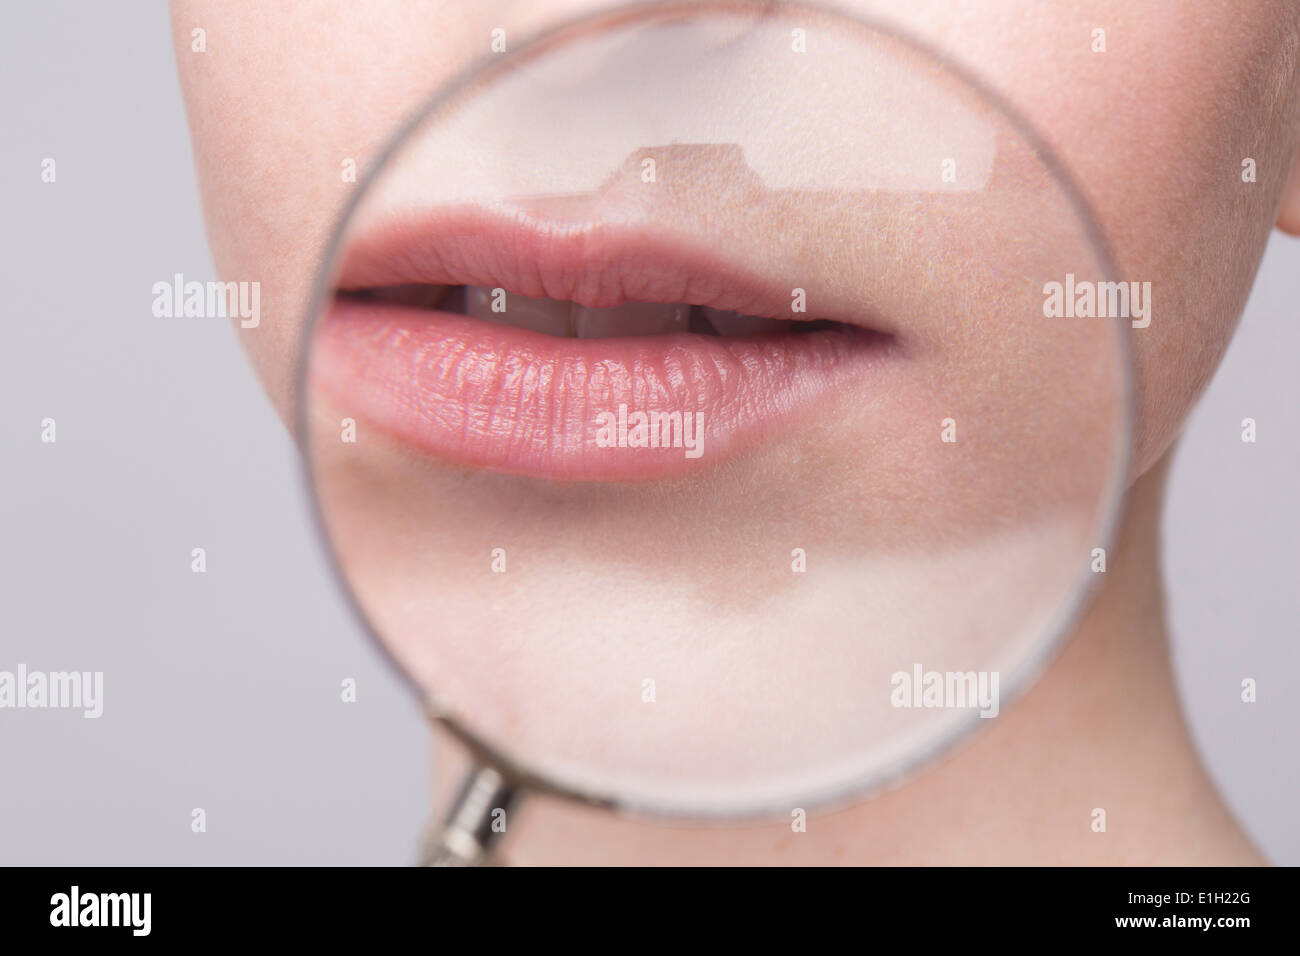 Portrait of young woman, magnifying glass on mouth - Stock Image